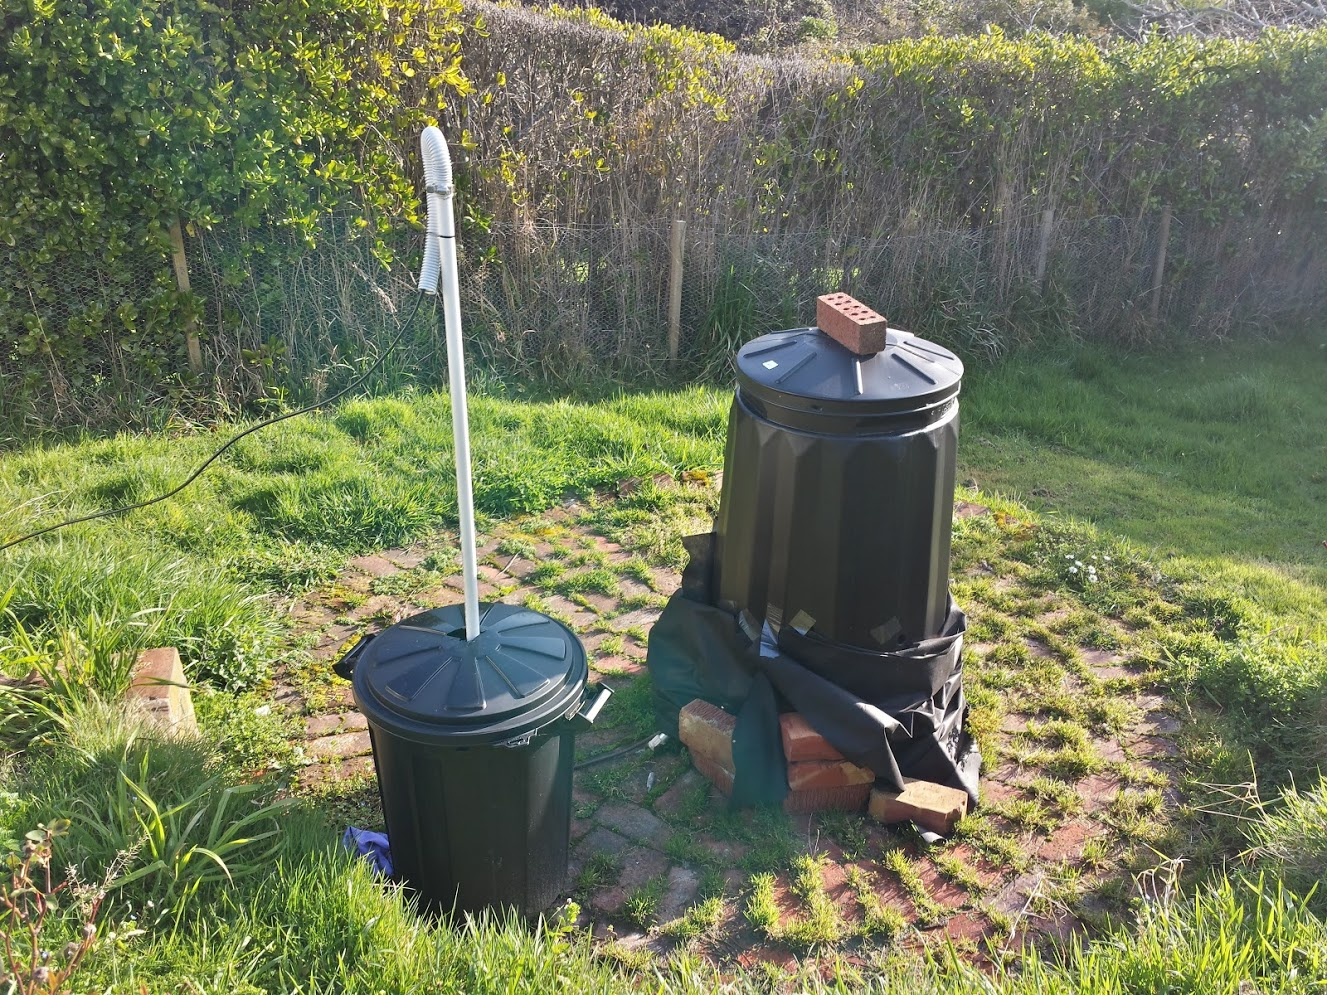 photo of the compost bins housing the magnetometers